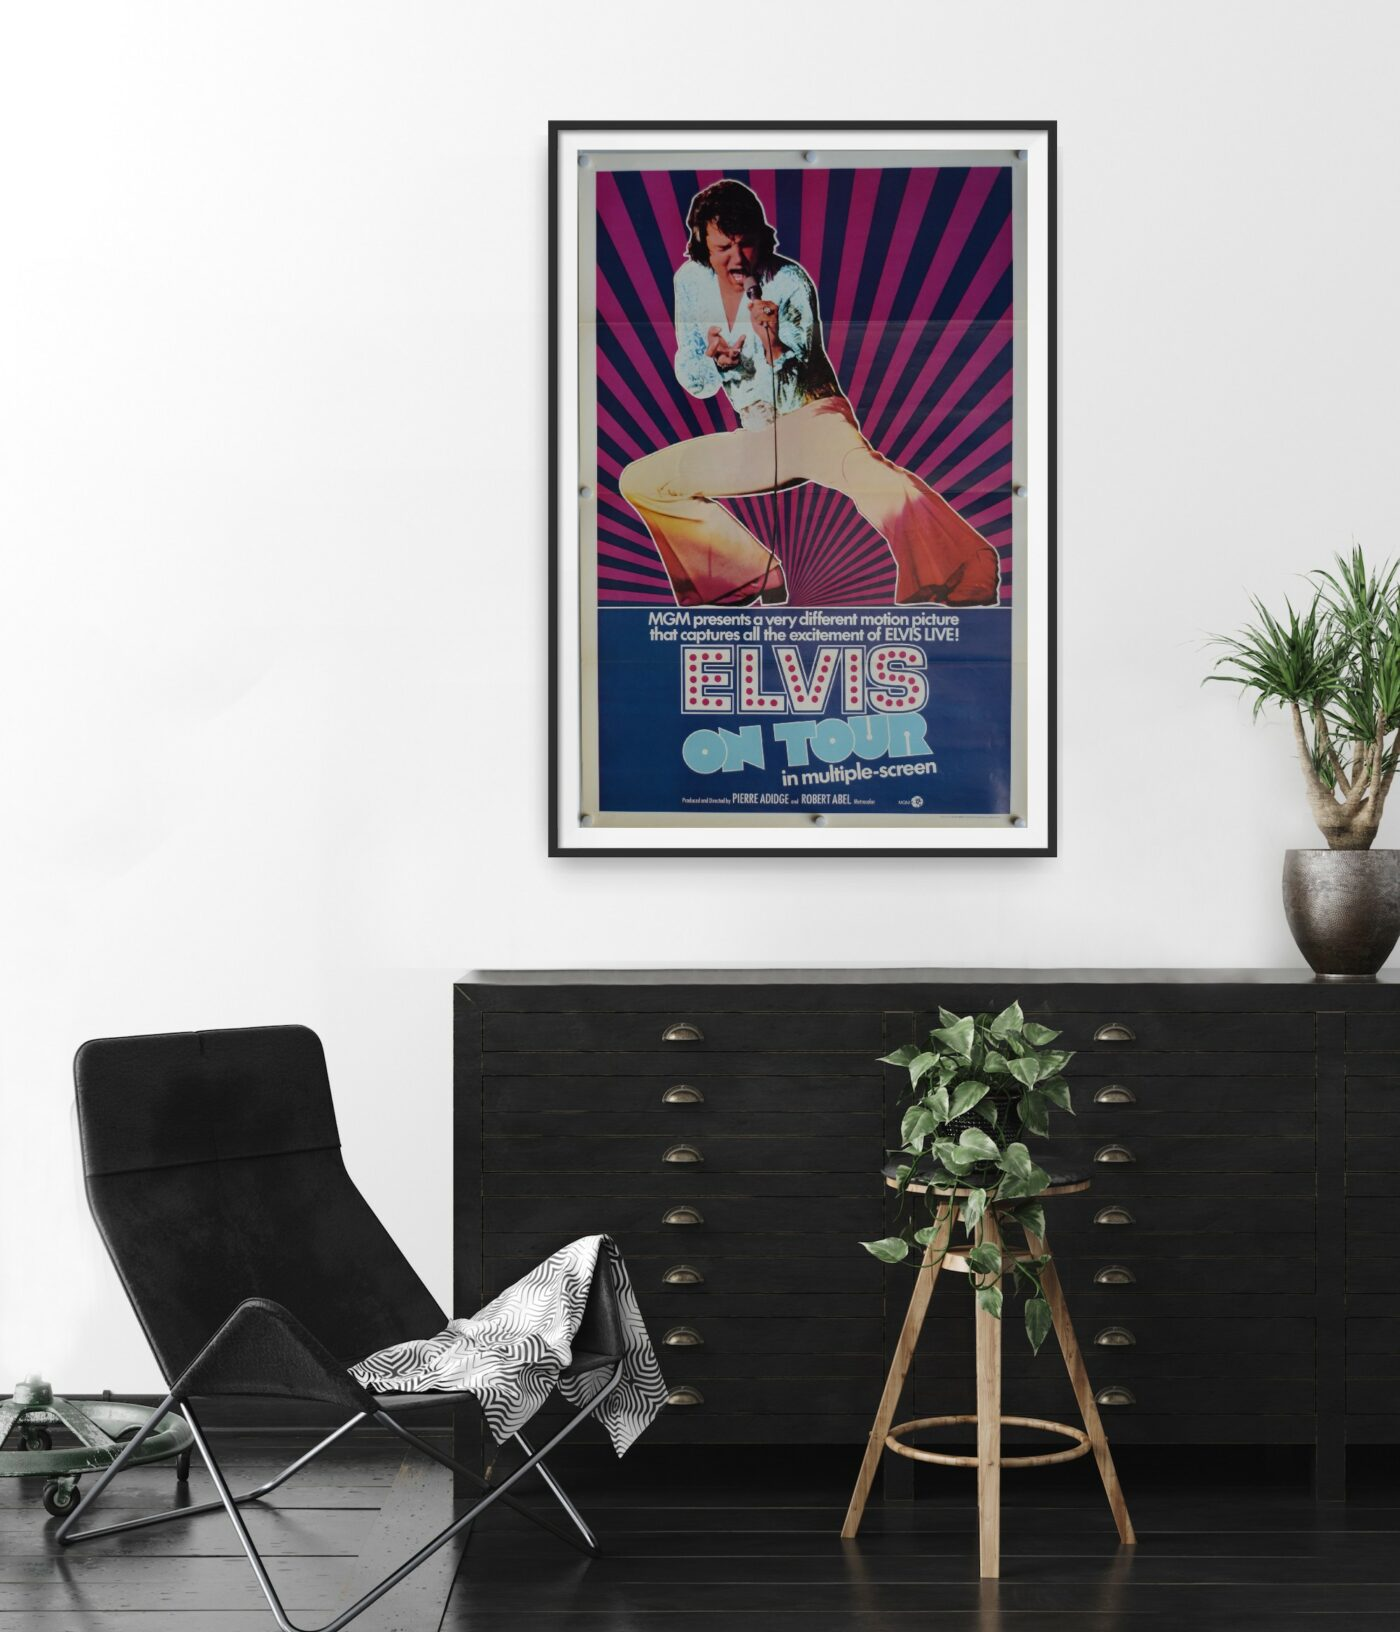 Images shows a poster for the 1972 documentary Elvis On Tour.